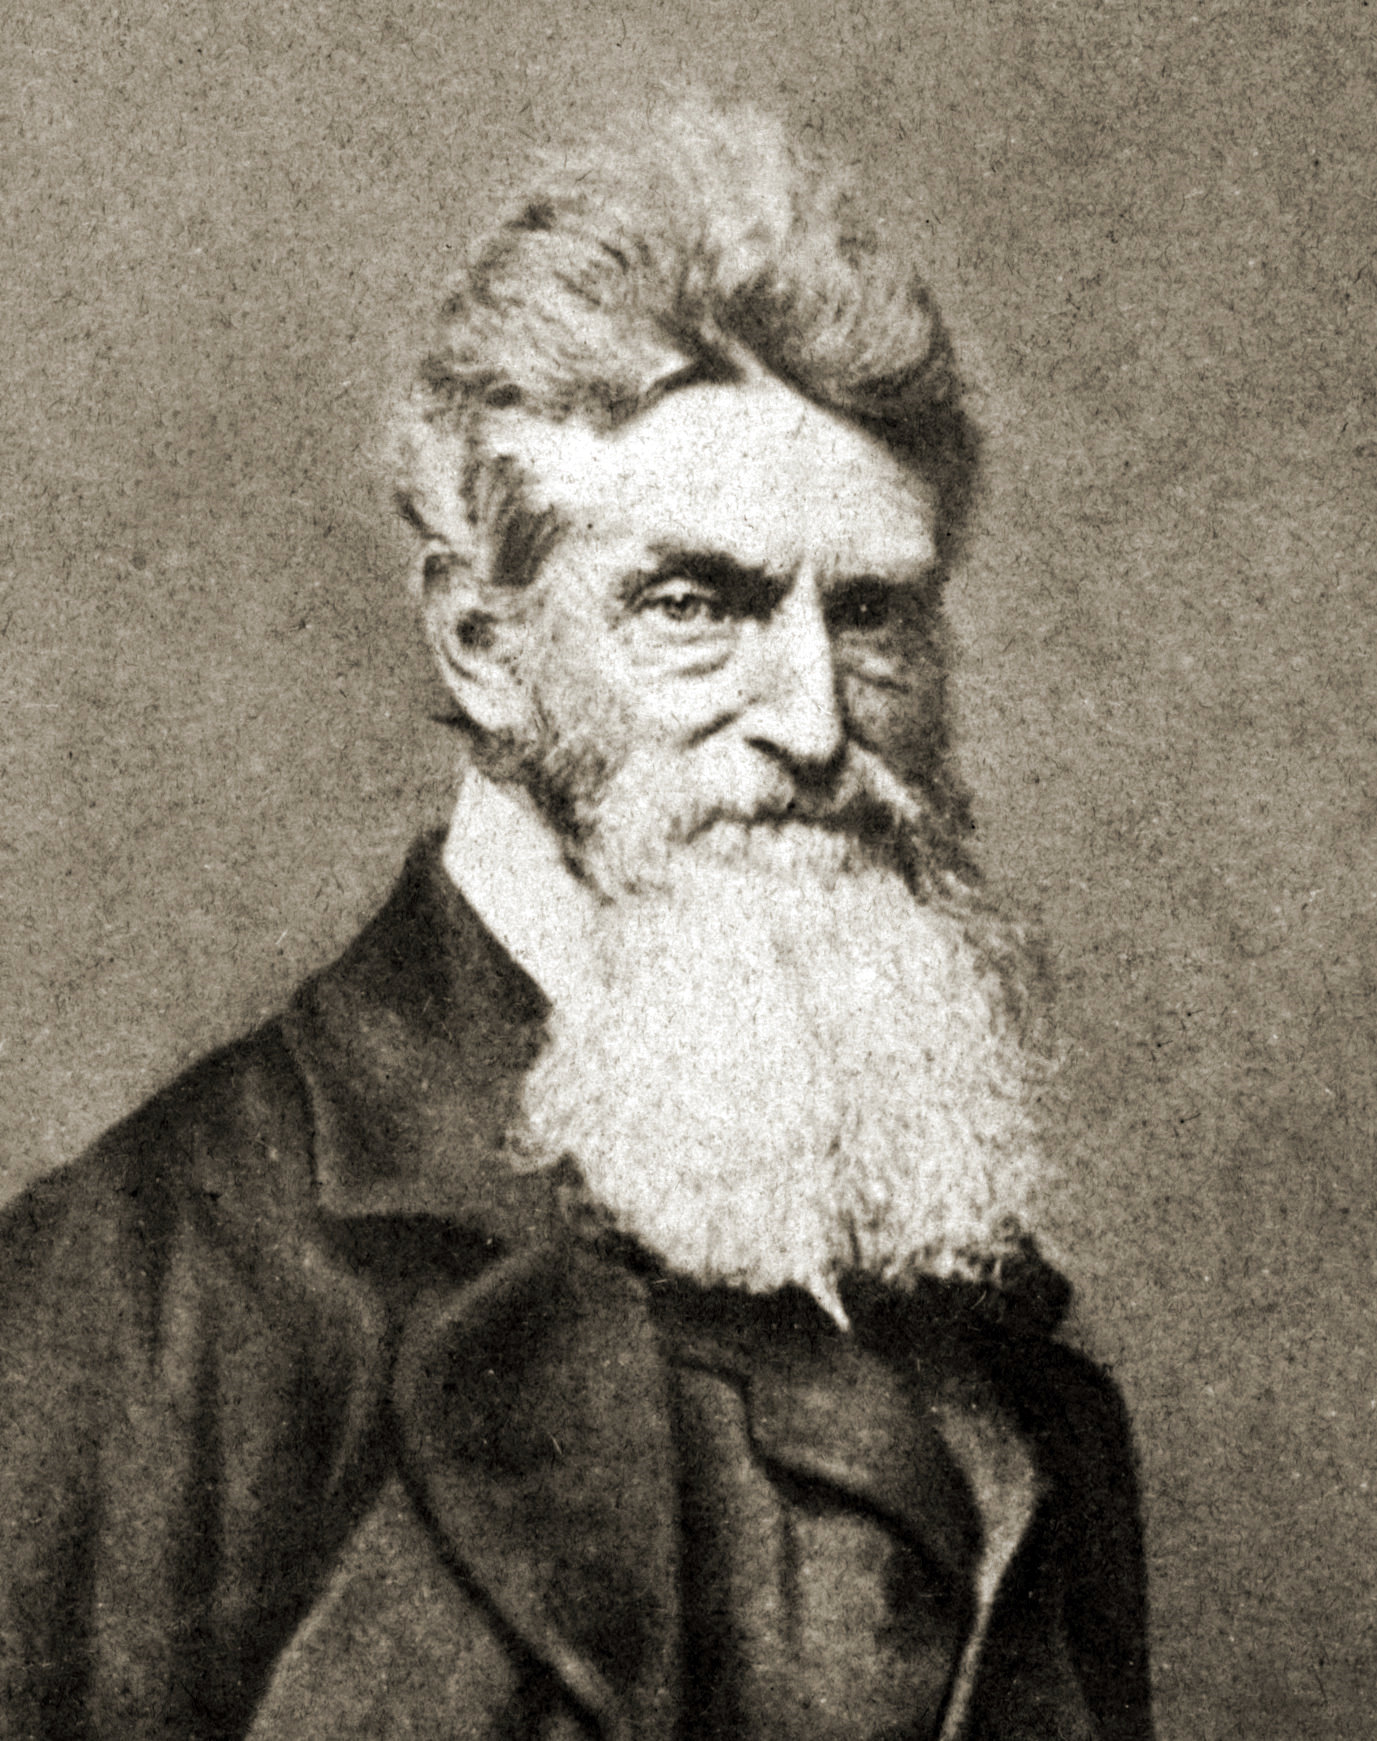 Another rendering of abolitionist John Brown, with his white flowing beard